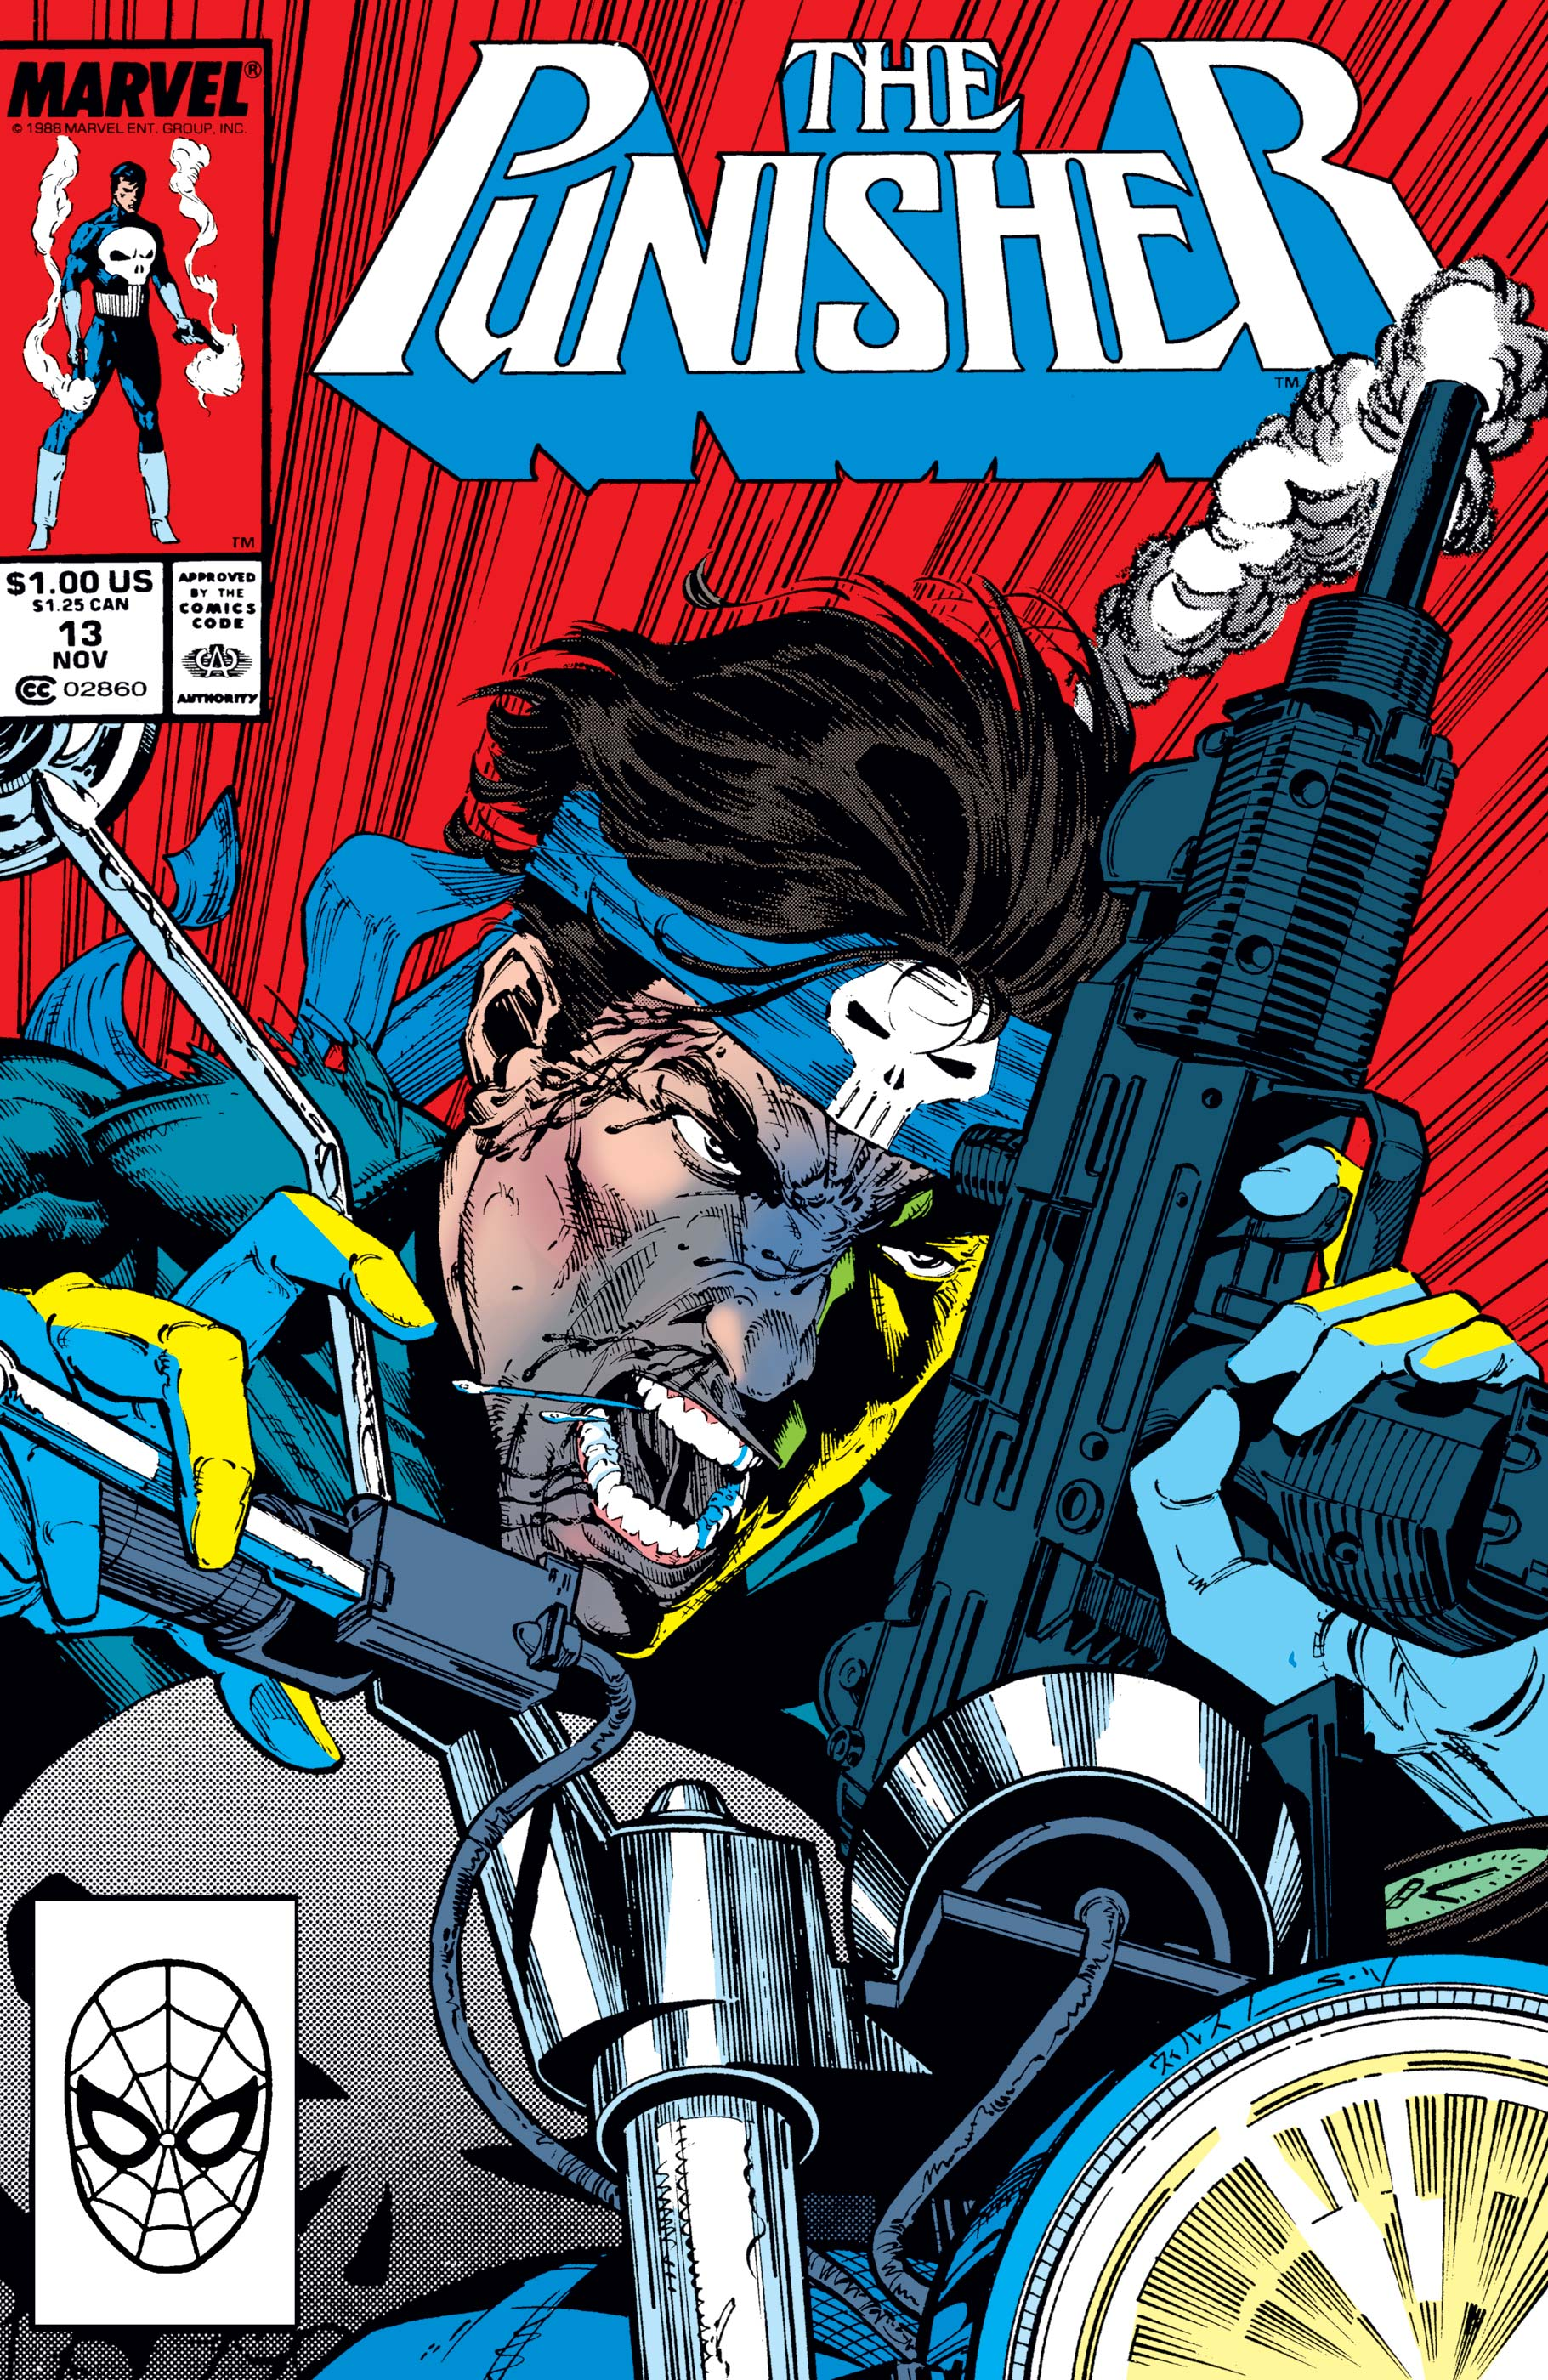 The Punisher (1987) #13